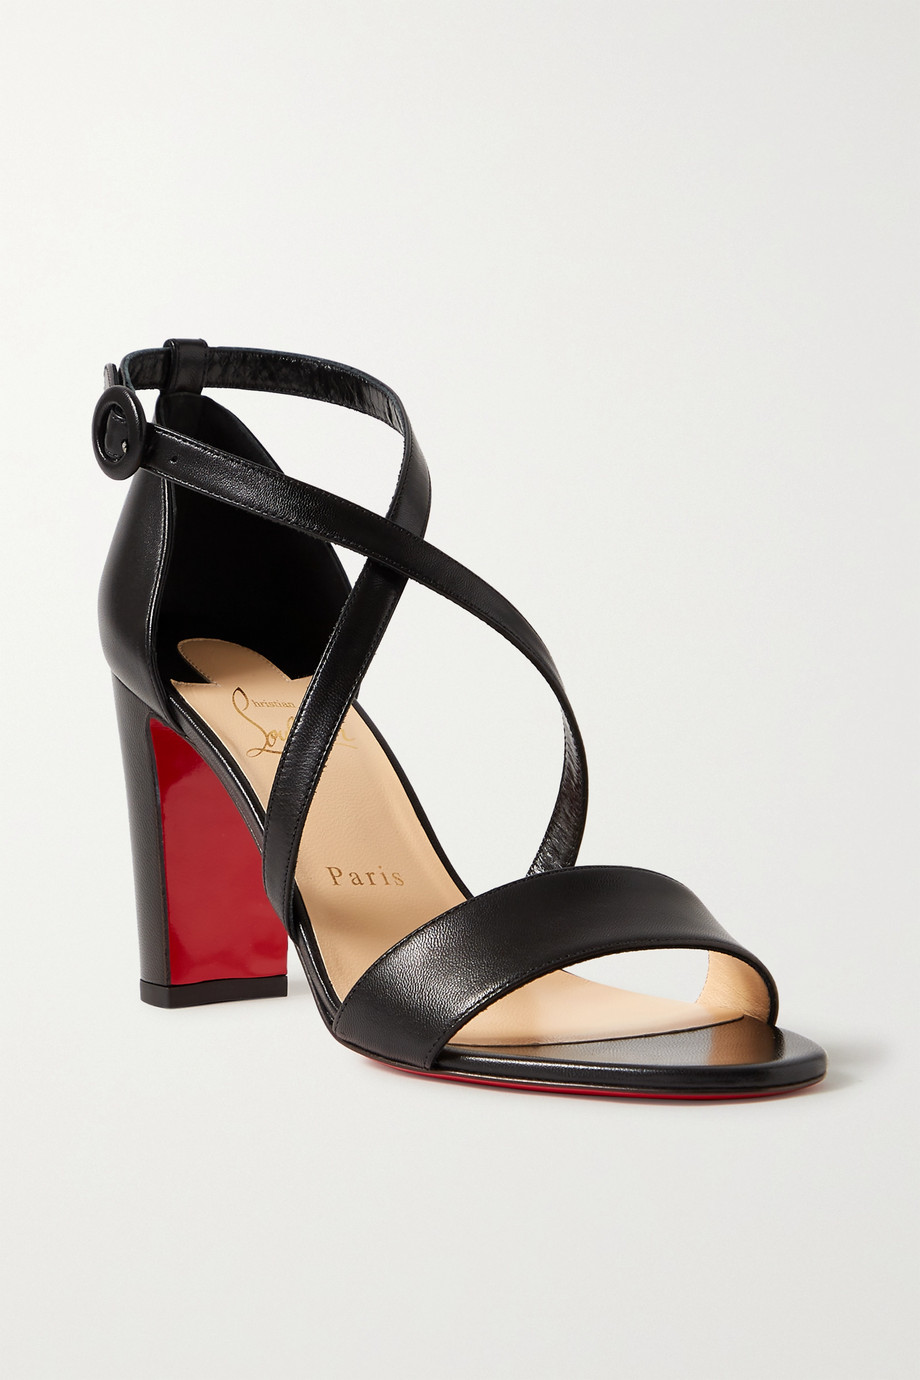 Christian Louboutin Loubi Bee 85 leather sandals